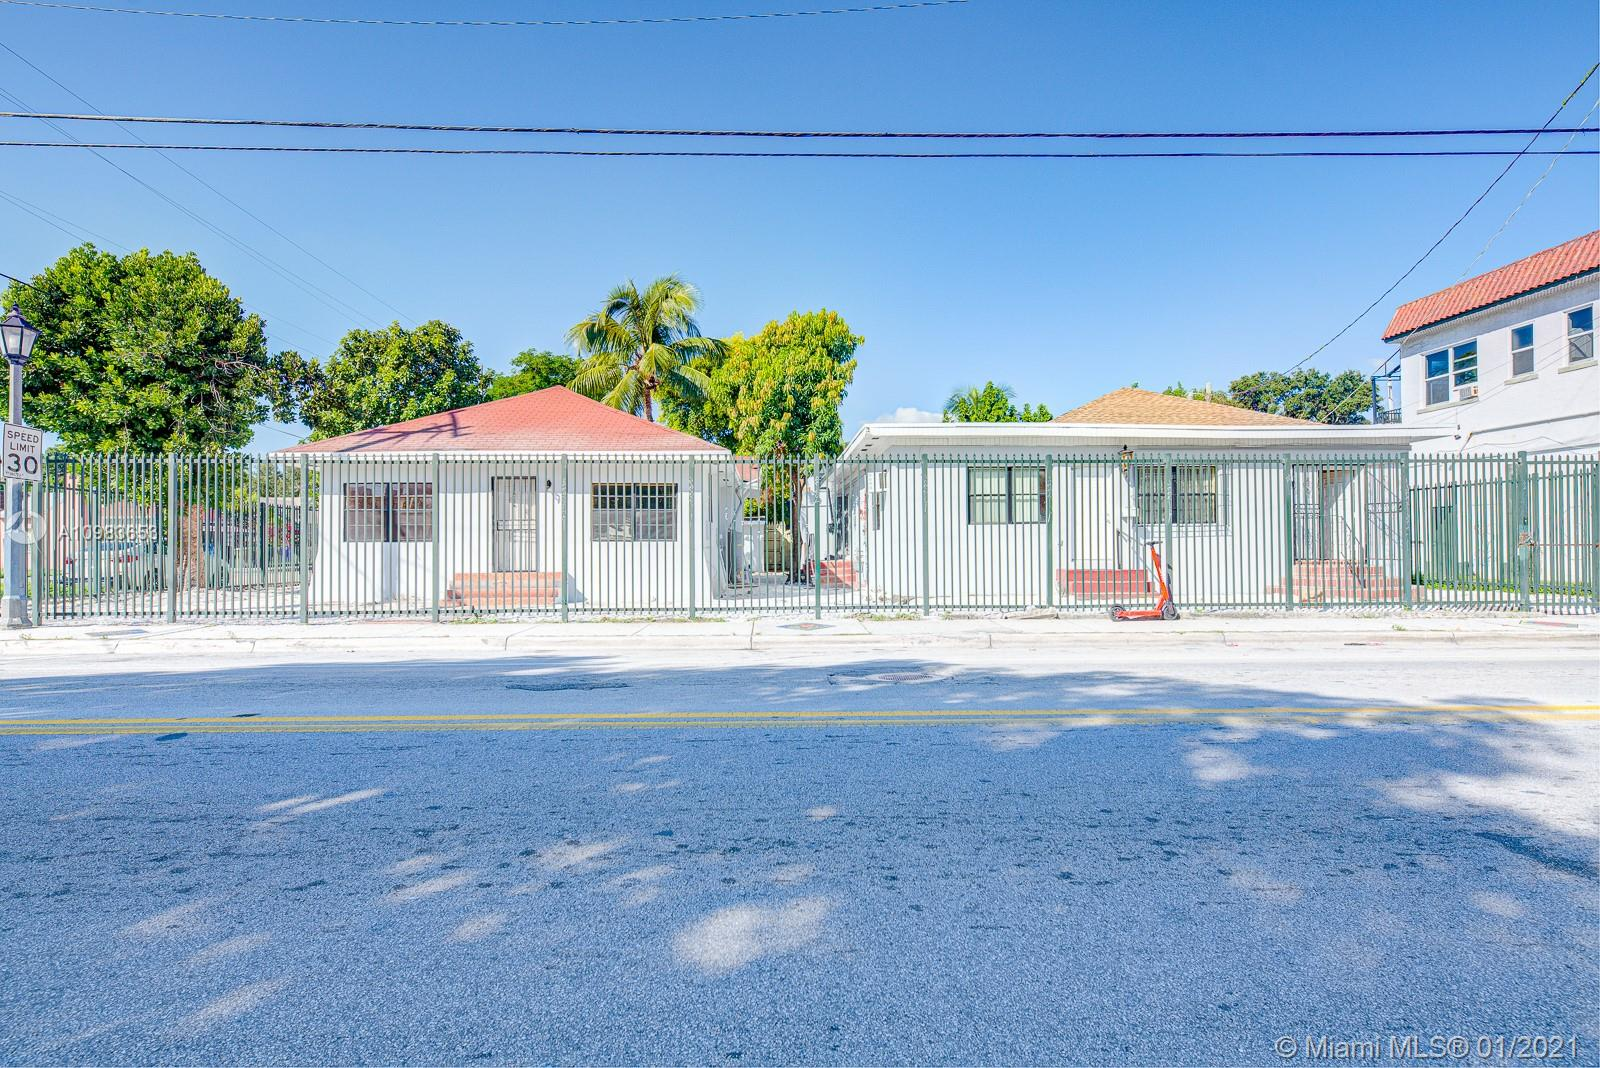 3302 NW 2nd Ave, Miami, Florida 33127, ,Commercial Sale,For Sale,3302 NW 2nd Ave,A10983653